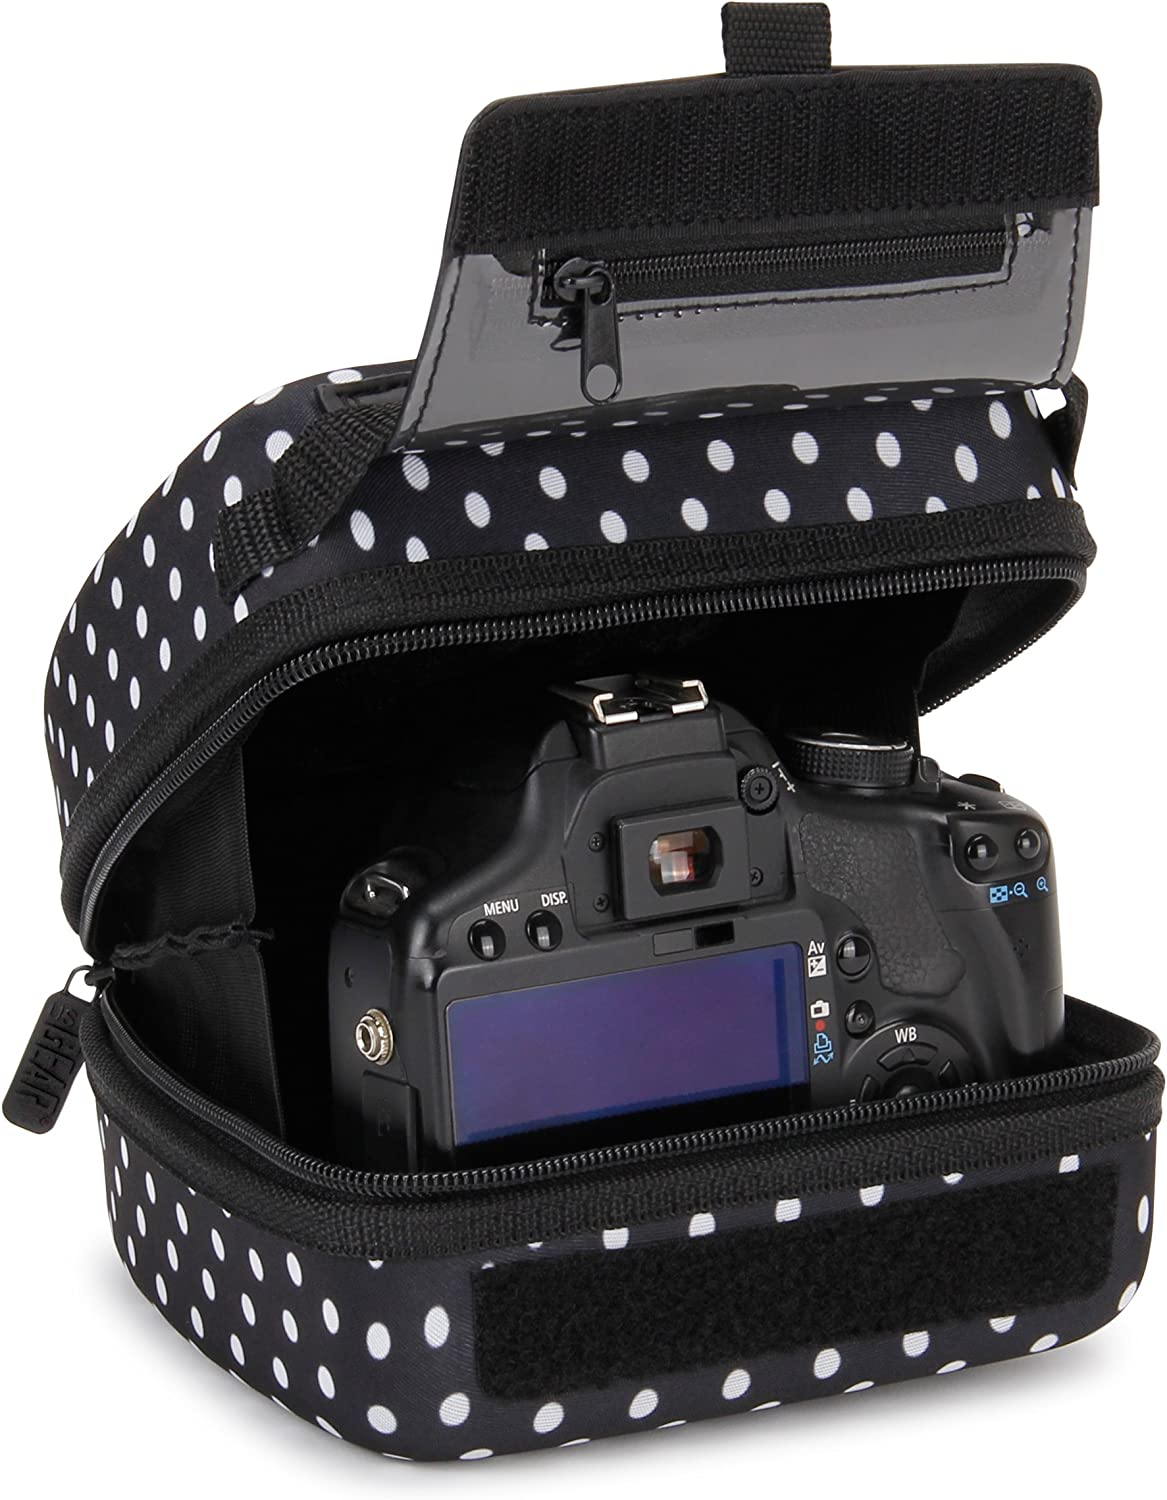 USA GEAR Hard Shell DSLR Camera Case (Polka Dot) with Molded EVA Protection, Quick Access Opening, Padded Interior and Rubber Coated Handle-Compatible with Nikon, Canon, Pentax, Olympus and More